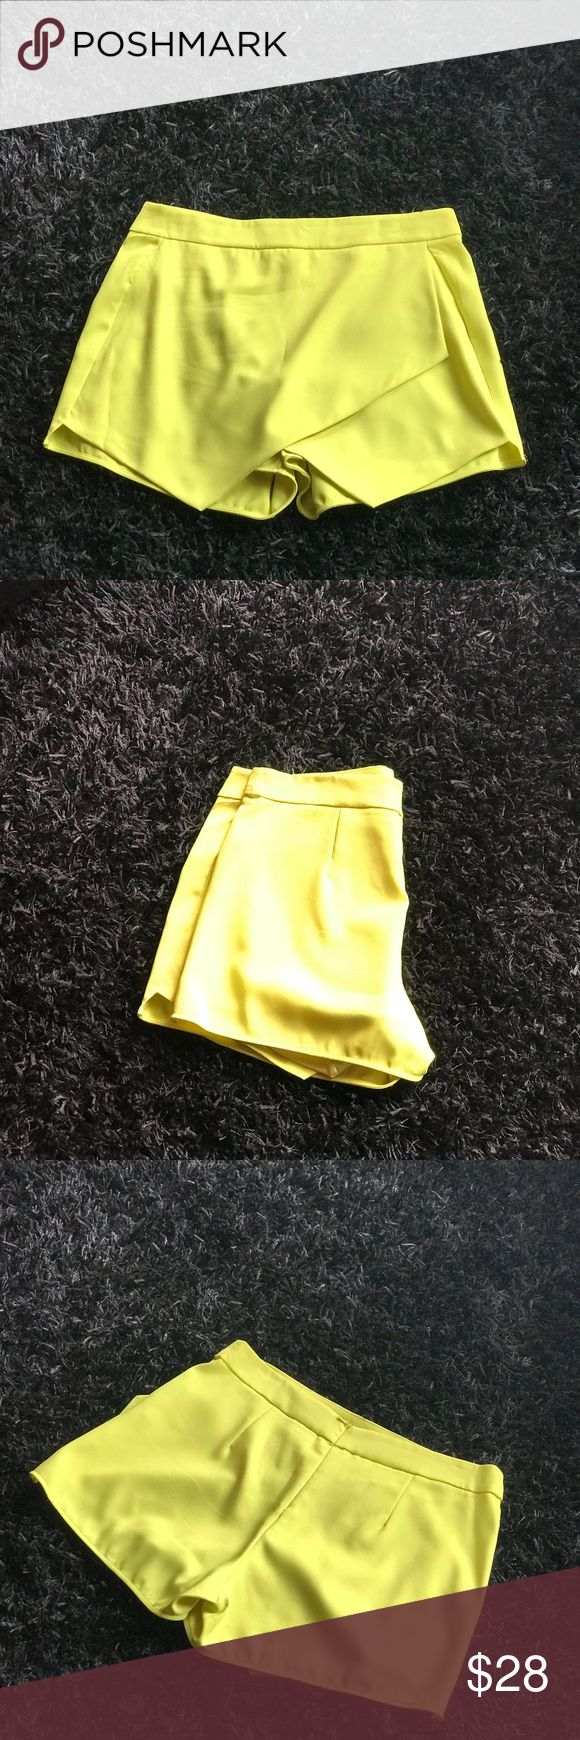 Asymmetric Skort Neon yellow Skort with an asymmetric split cut in the front that is super stylish. The back has the appearance of shorts while the front appears as a skirt 💛 Skirts Asymmetrical